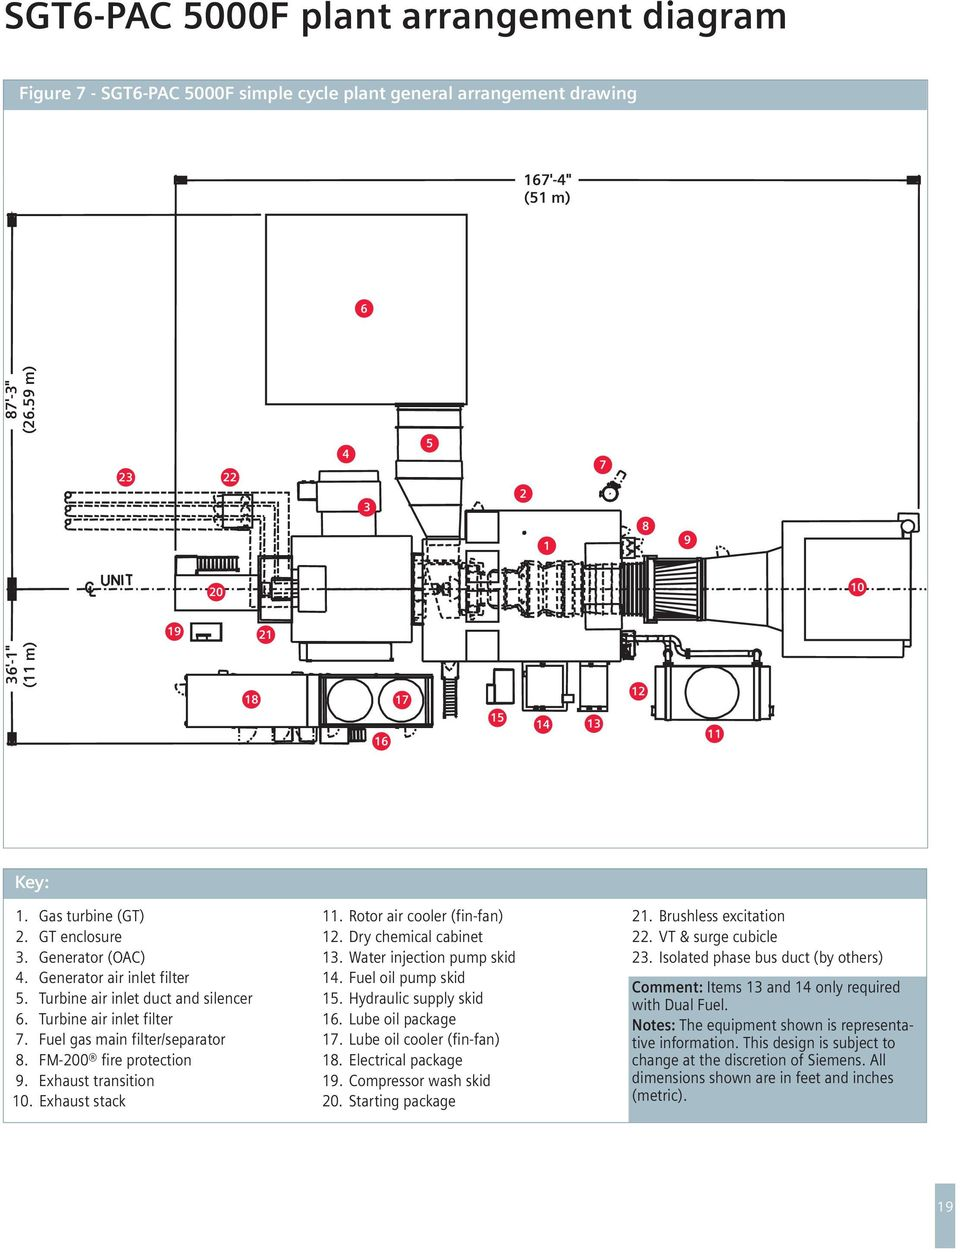 Siemens Gas Turbine Sgt6 5000f Application Overview Pdf Massimo Oil Wiring Diagram Air Inlet Duct And Silencer 6 Filter 7 Fuel